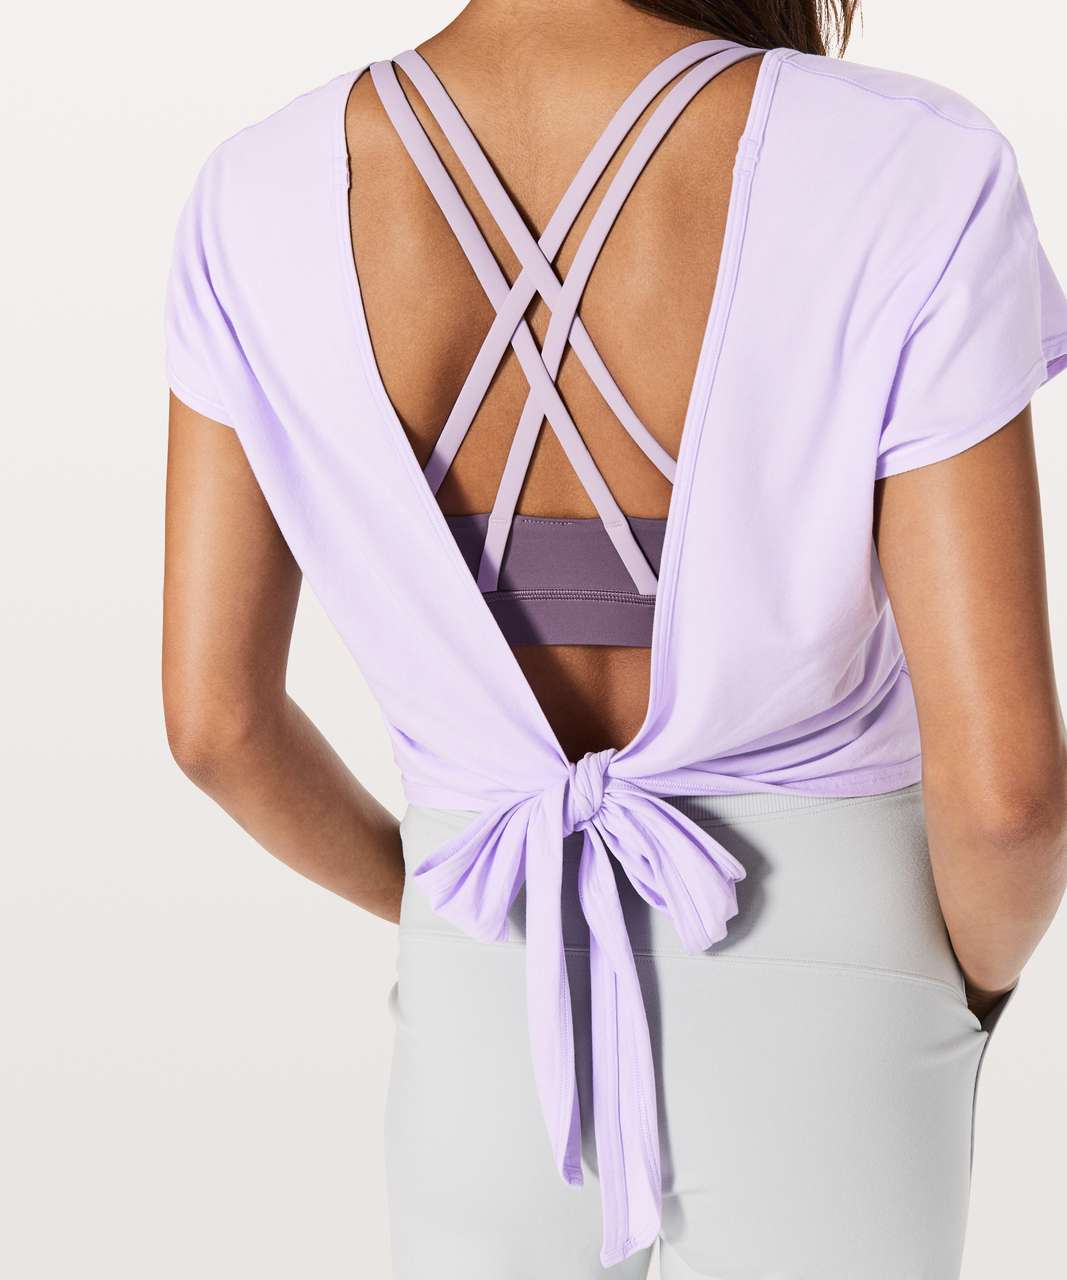 Lululemon Its A Tie Tee - Sheer Violet